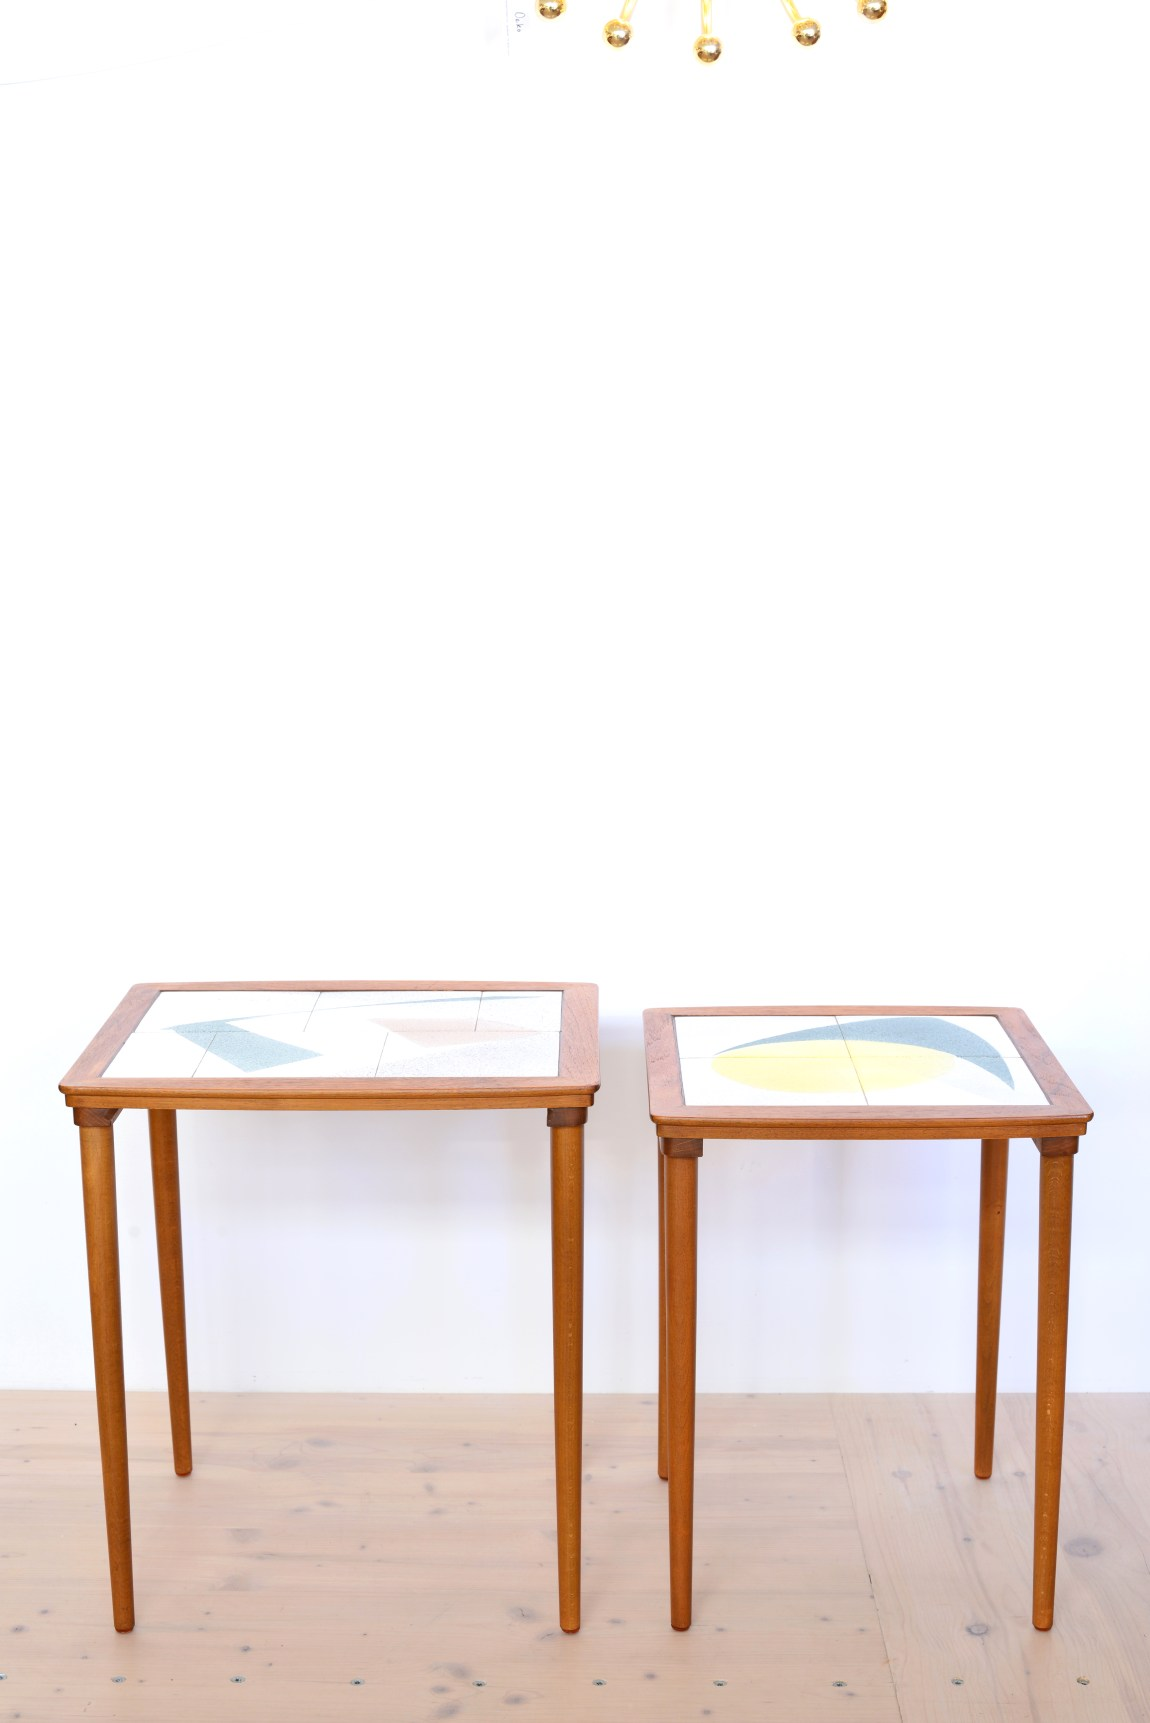 Nesting Table Duo with Tiled Surface heyday möbel Zürich